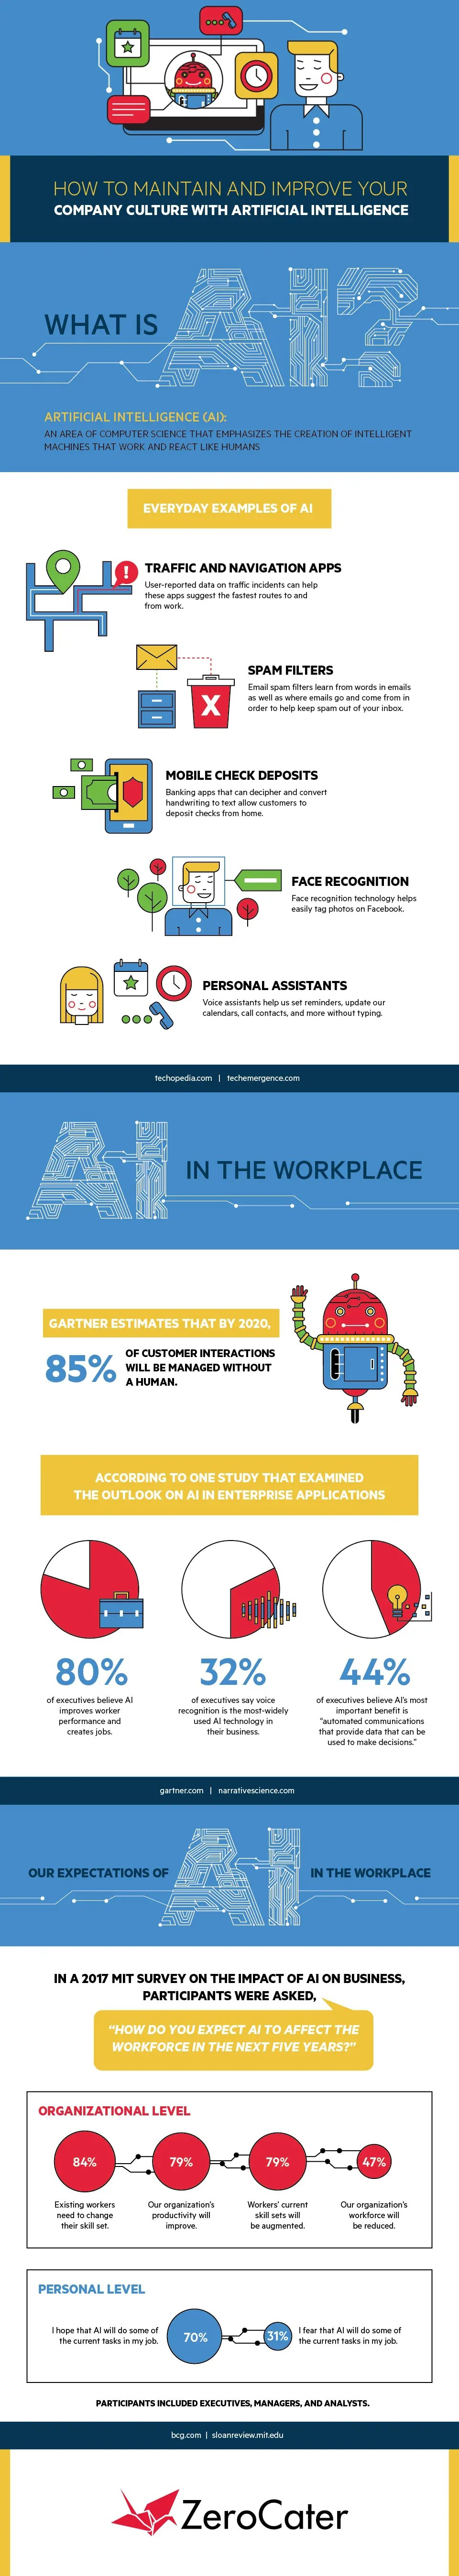 How to Maintain and Improve your Company Culture with AI InfoGraphics